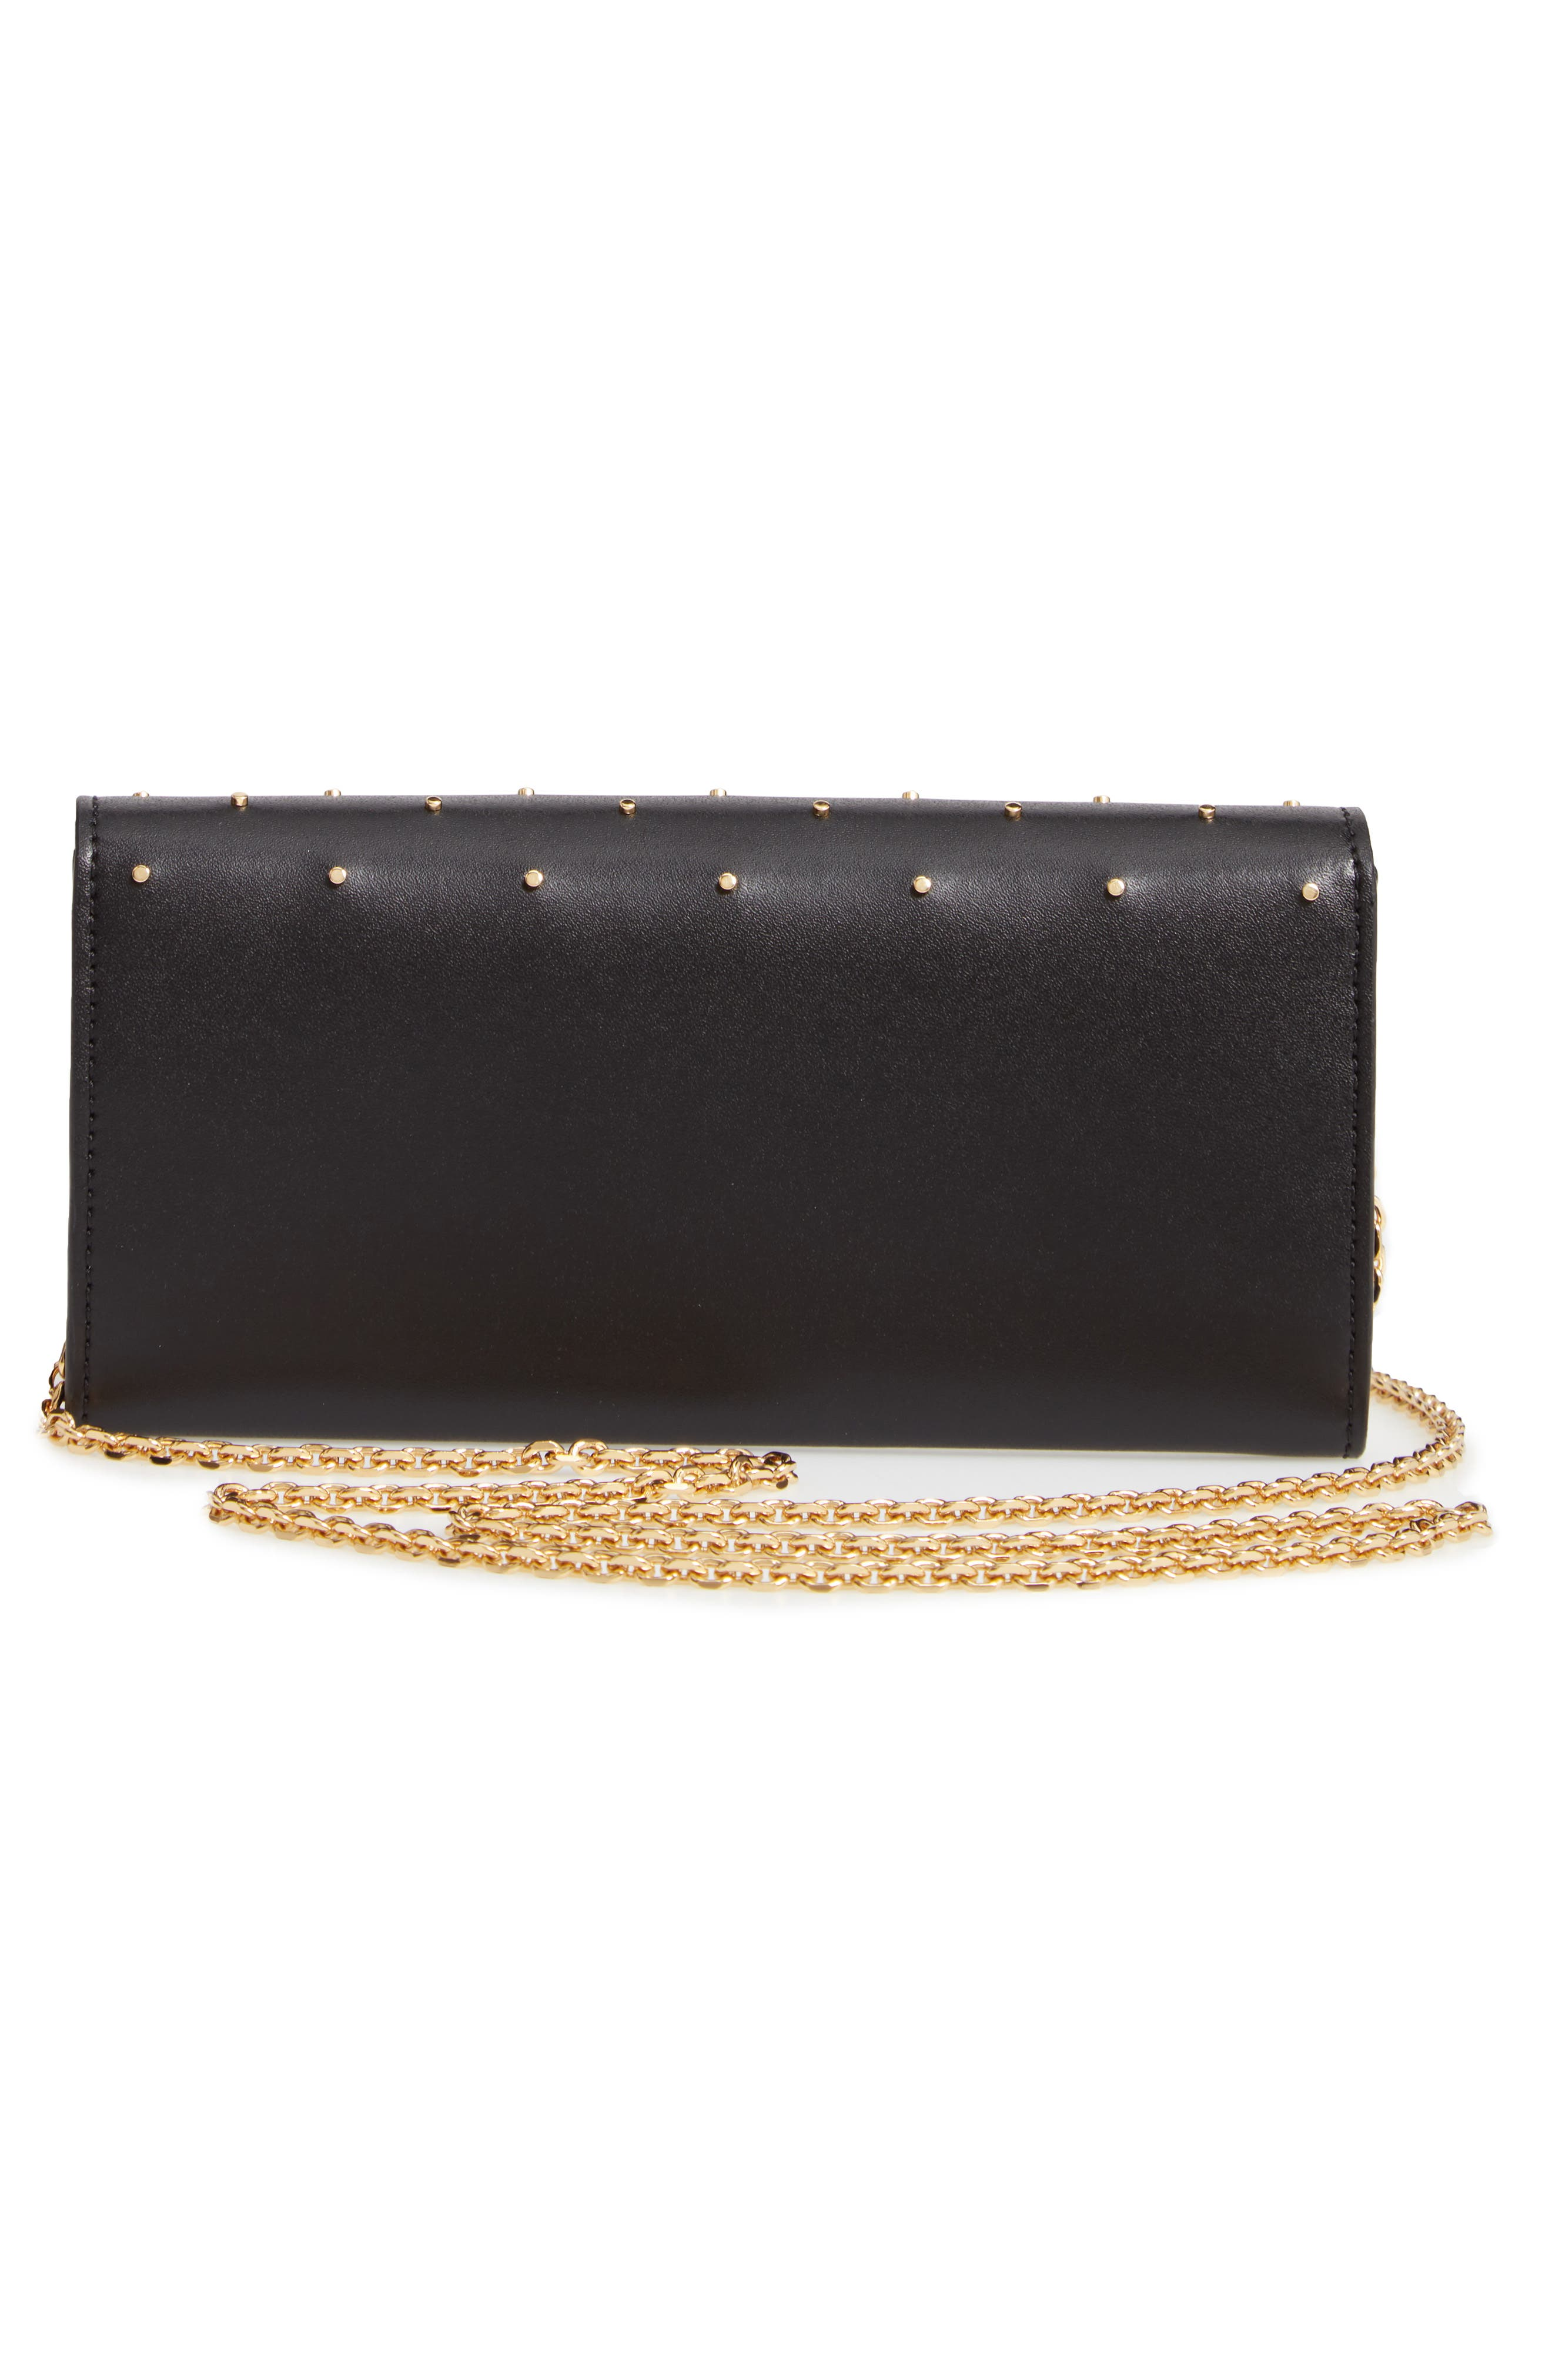 FENDI, Studded Calfskin Leather Continental Wallet on a Chain, Alternate thumbnail 3, color, 006